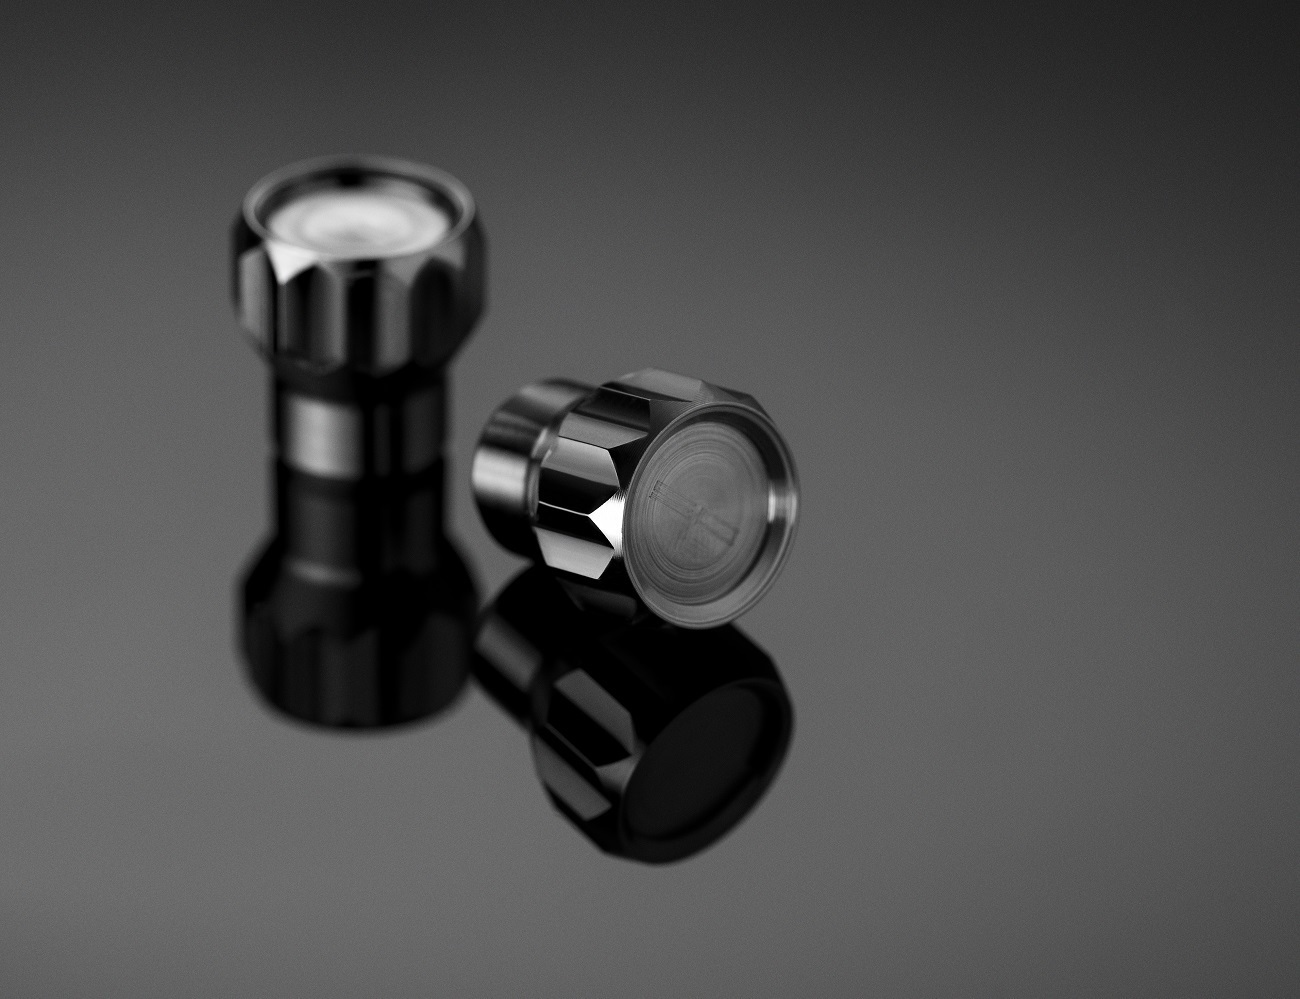 Coeus Titanium Valve Caps For Cars By Solloshi